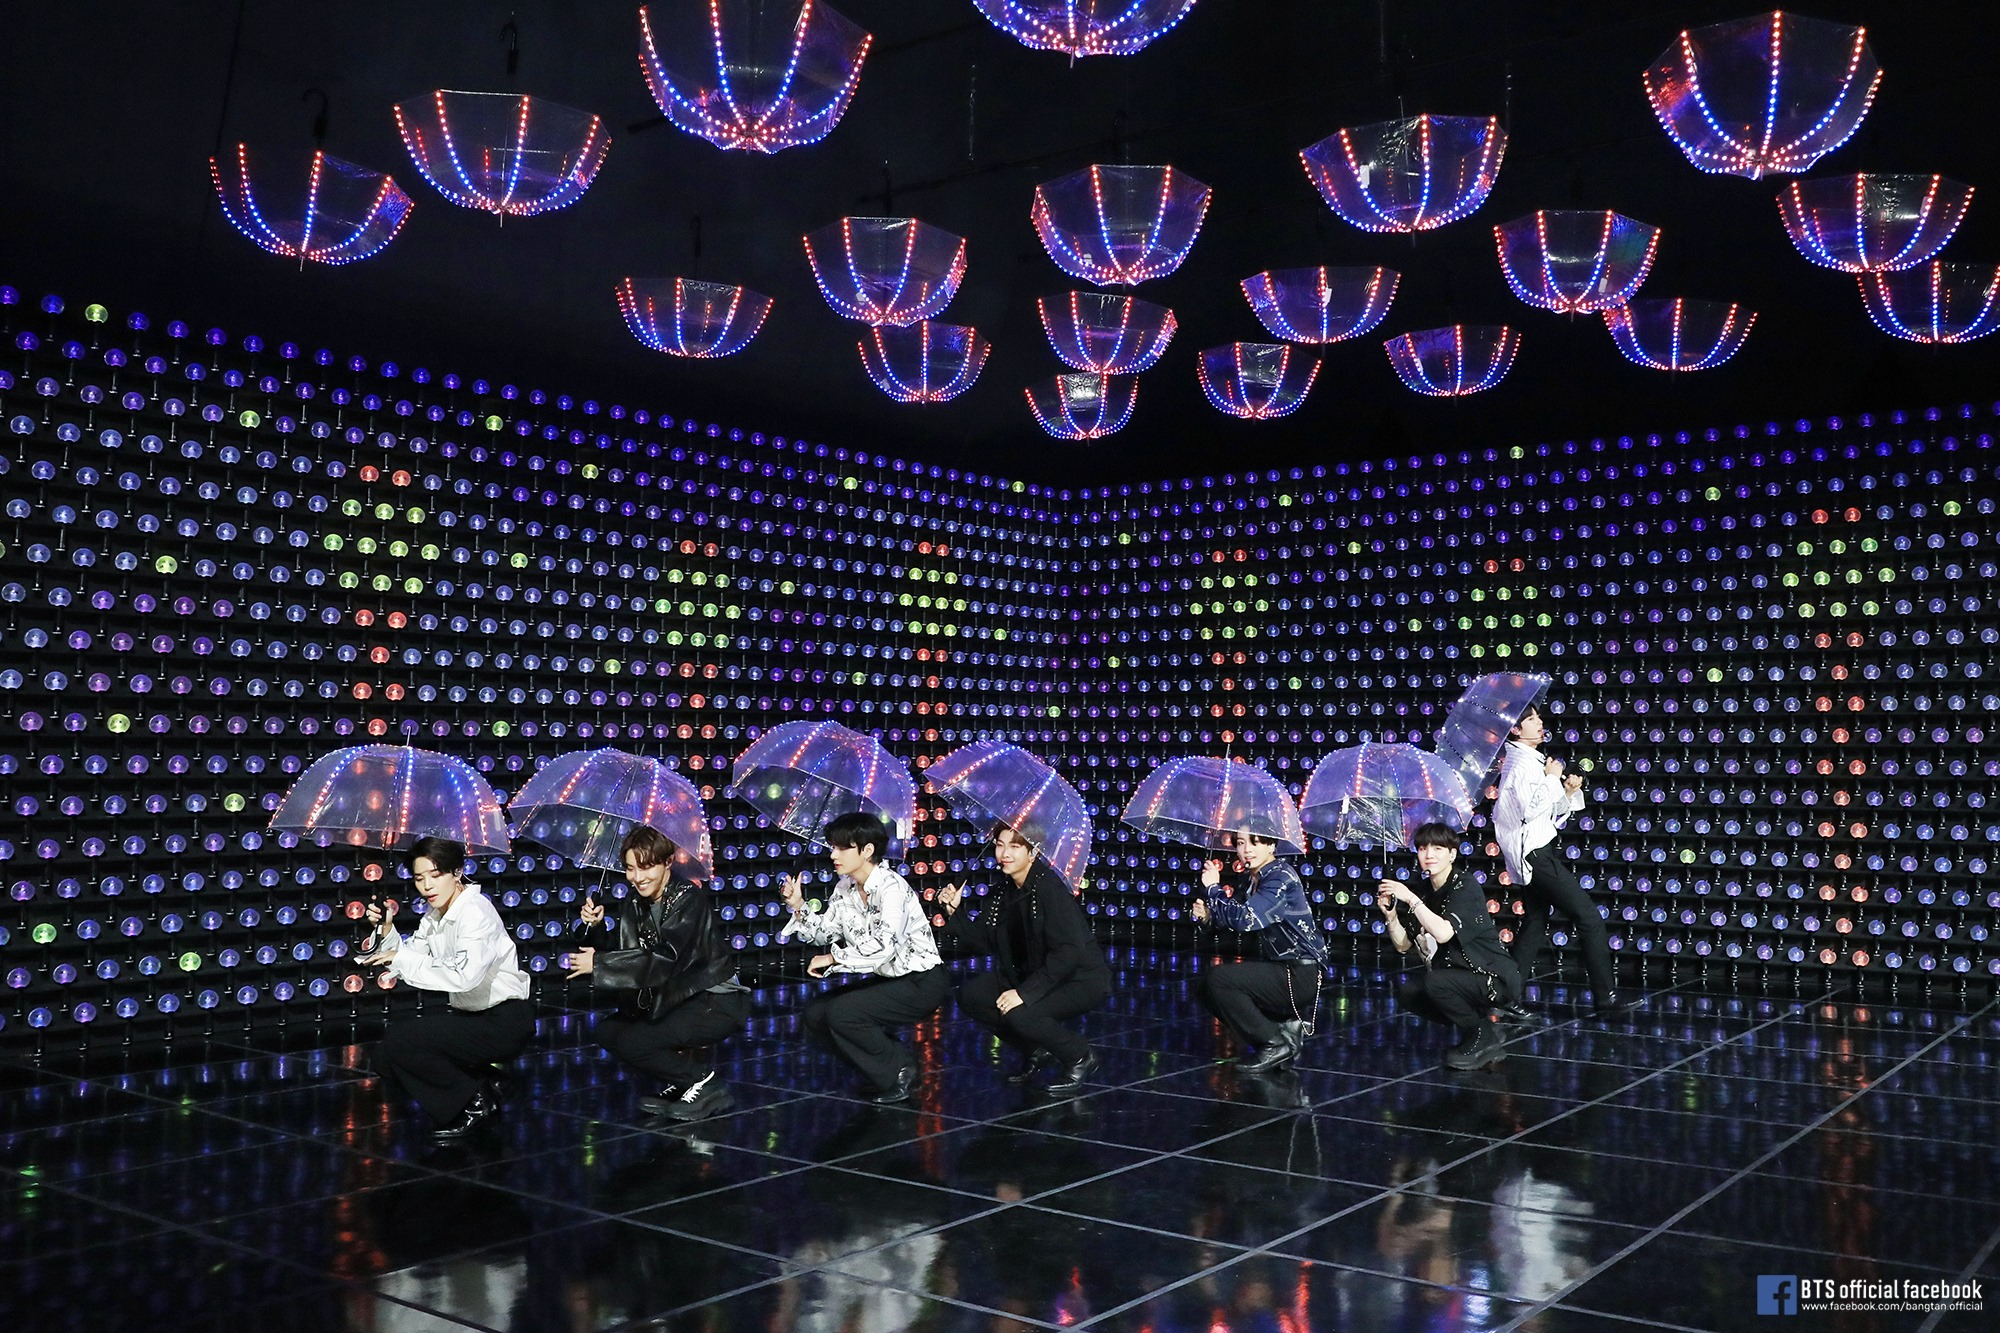 BTS held a virtual concert (Bang Bang Con The Live) in June 2020. What song did the concert kick off with? 54